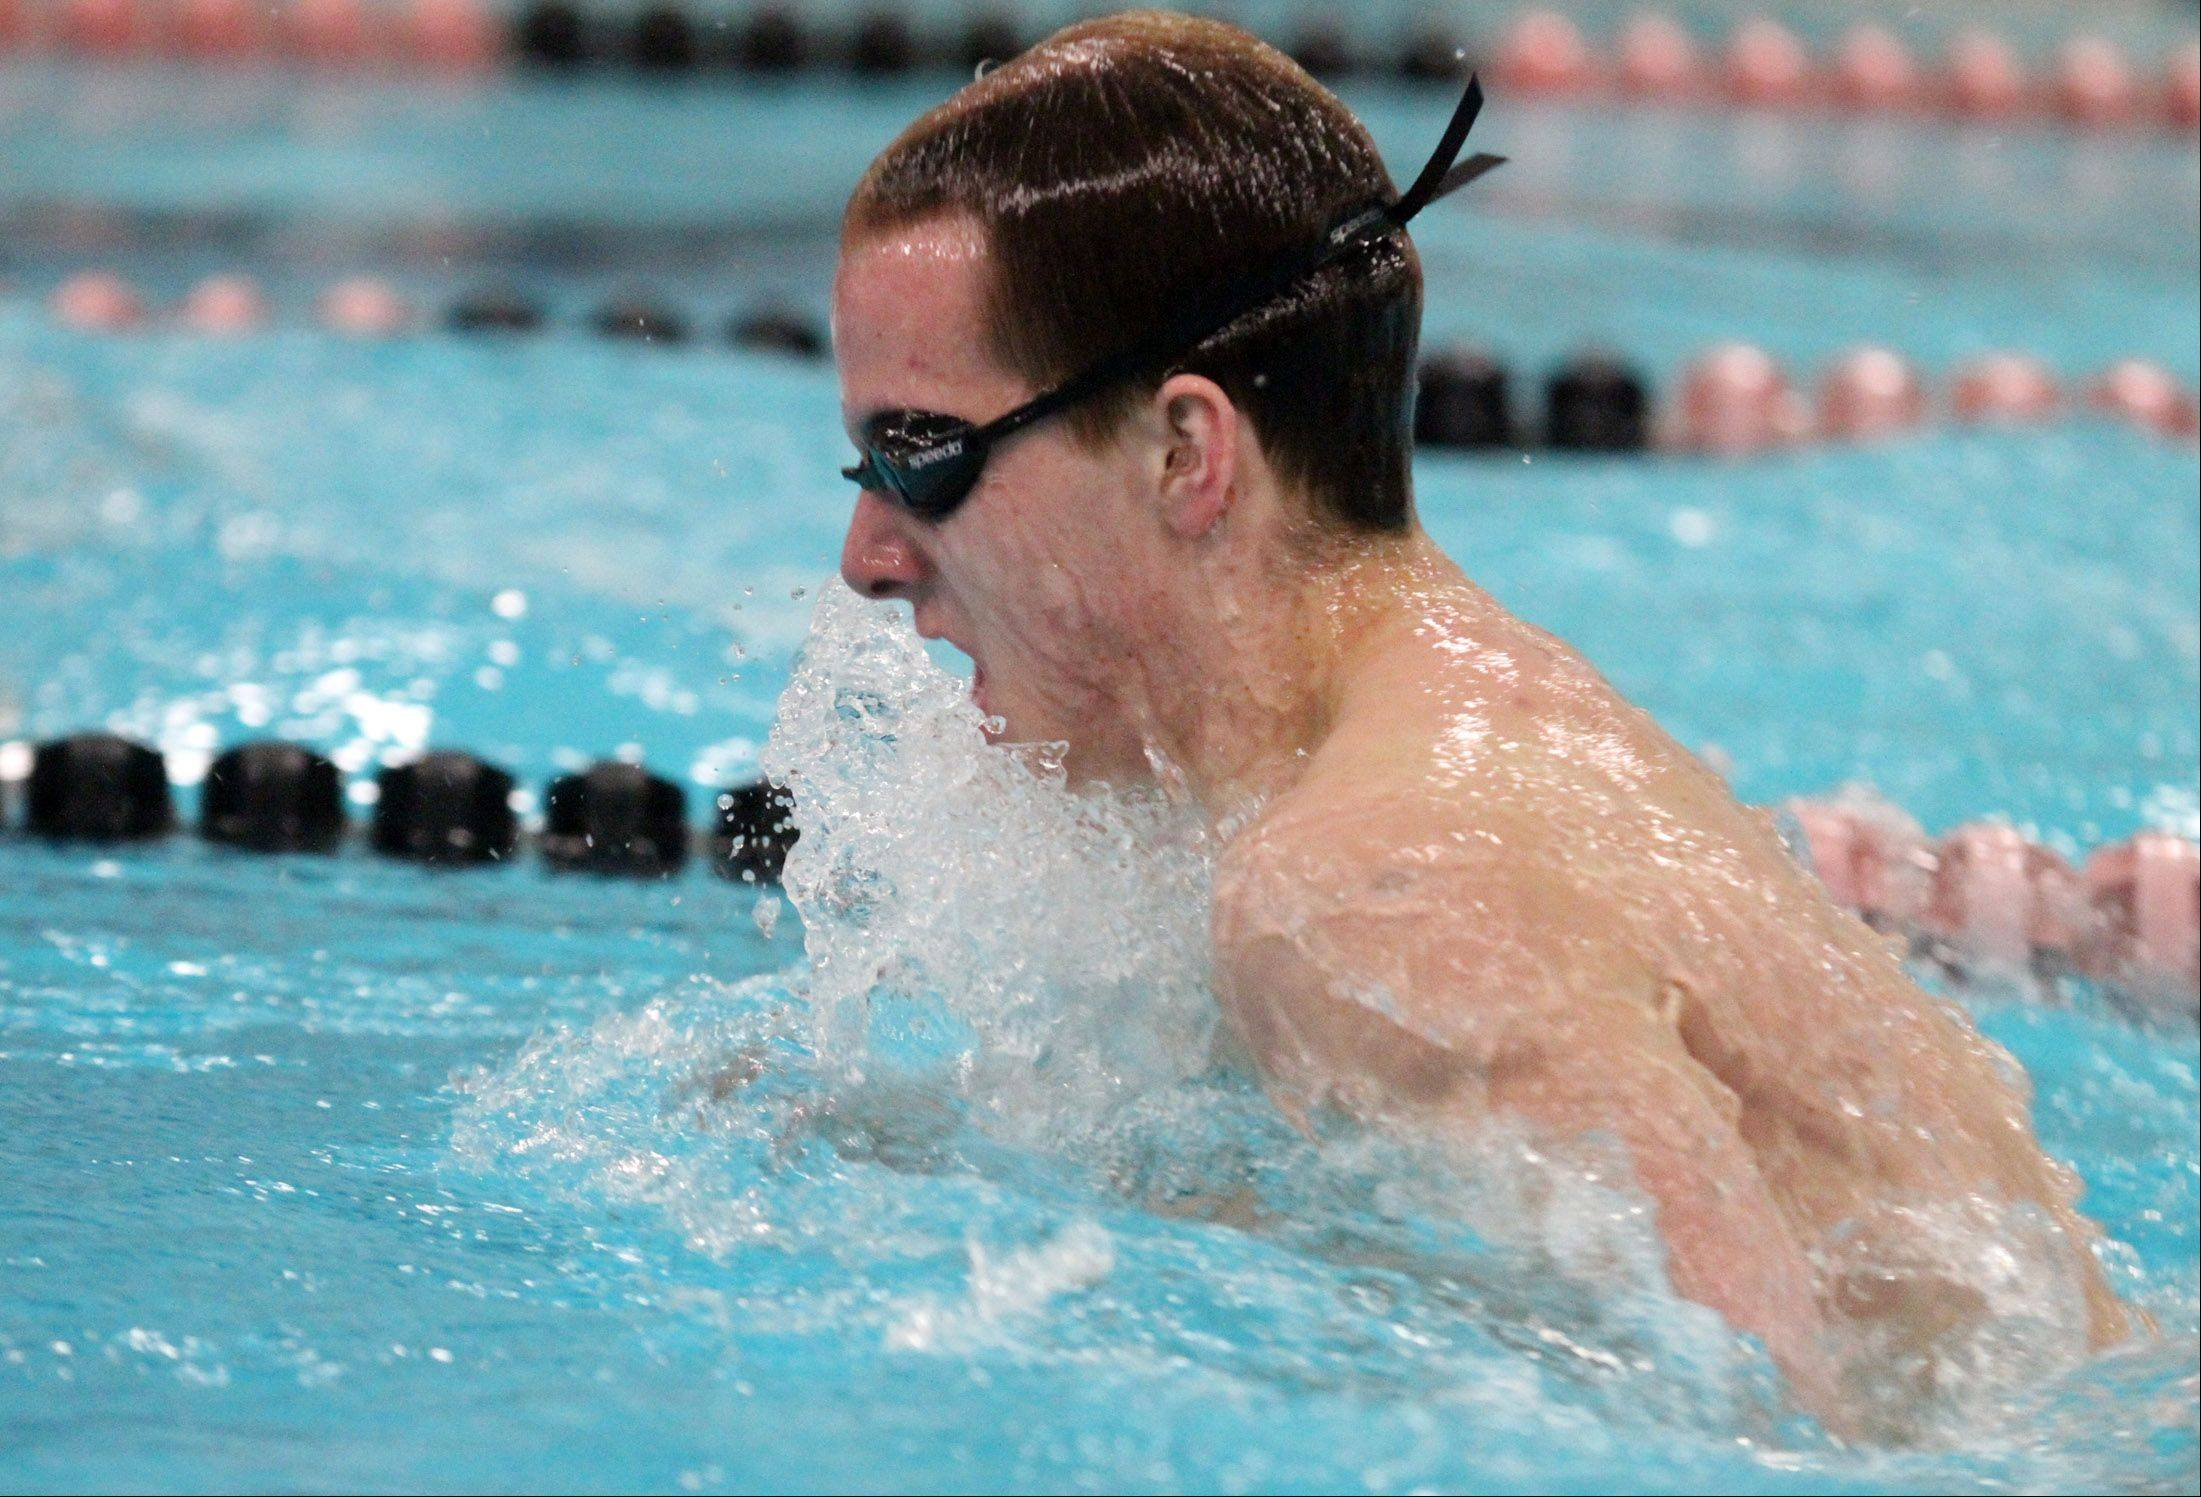 David Chokran swims the breast stoke leg of the 200-yard medley relay for St. Charles North at the sectional swim meet at St. Charles East on Saturday.